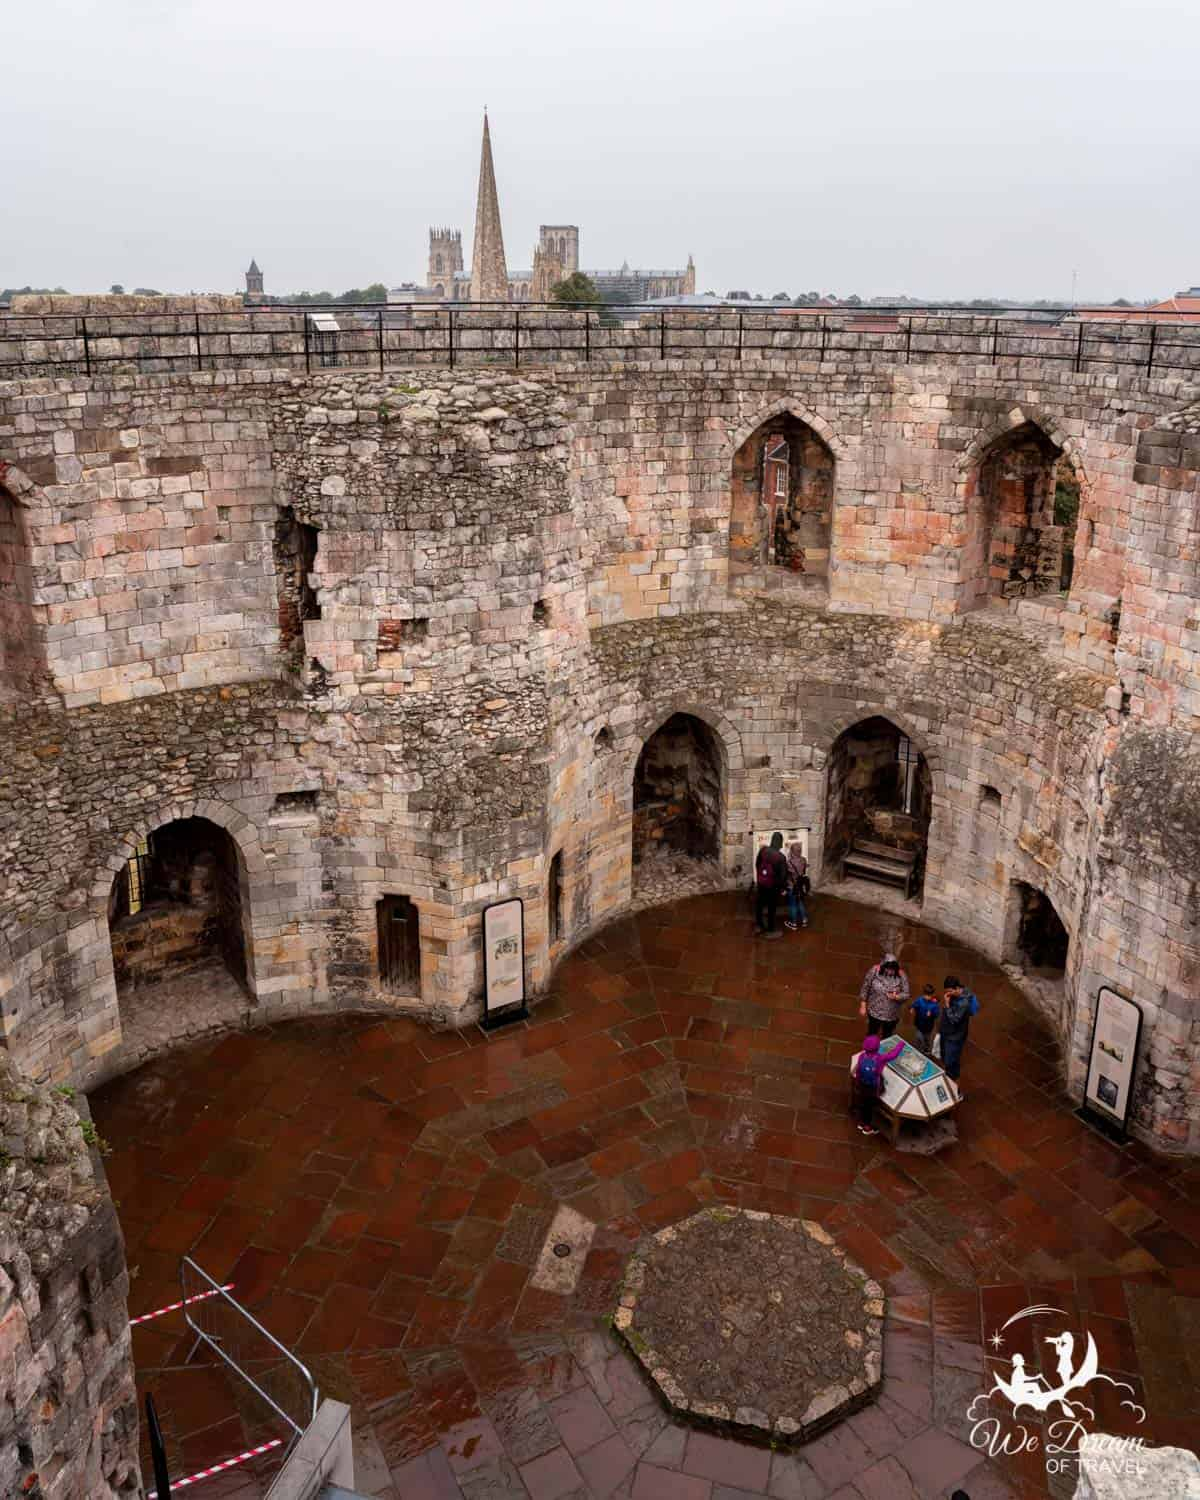 The interior of the ruined Clifford tower in York England